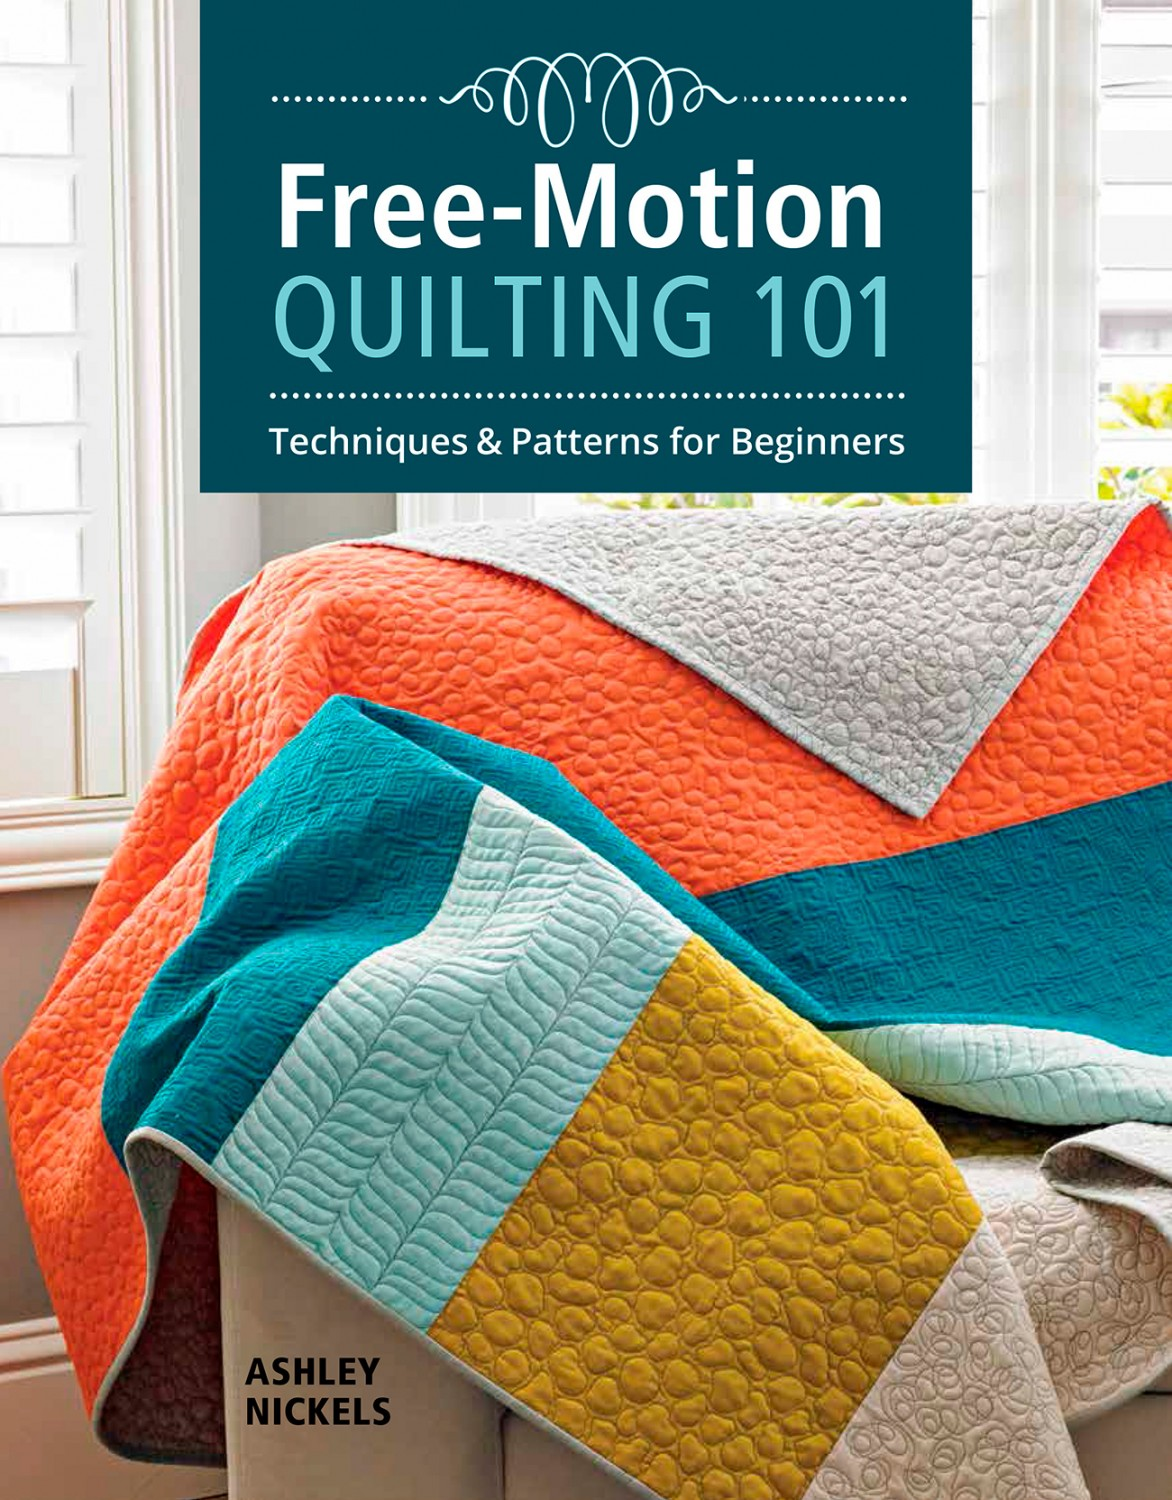 Free-Motion Quilting 101 By: Ashley Nickels